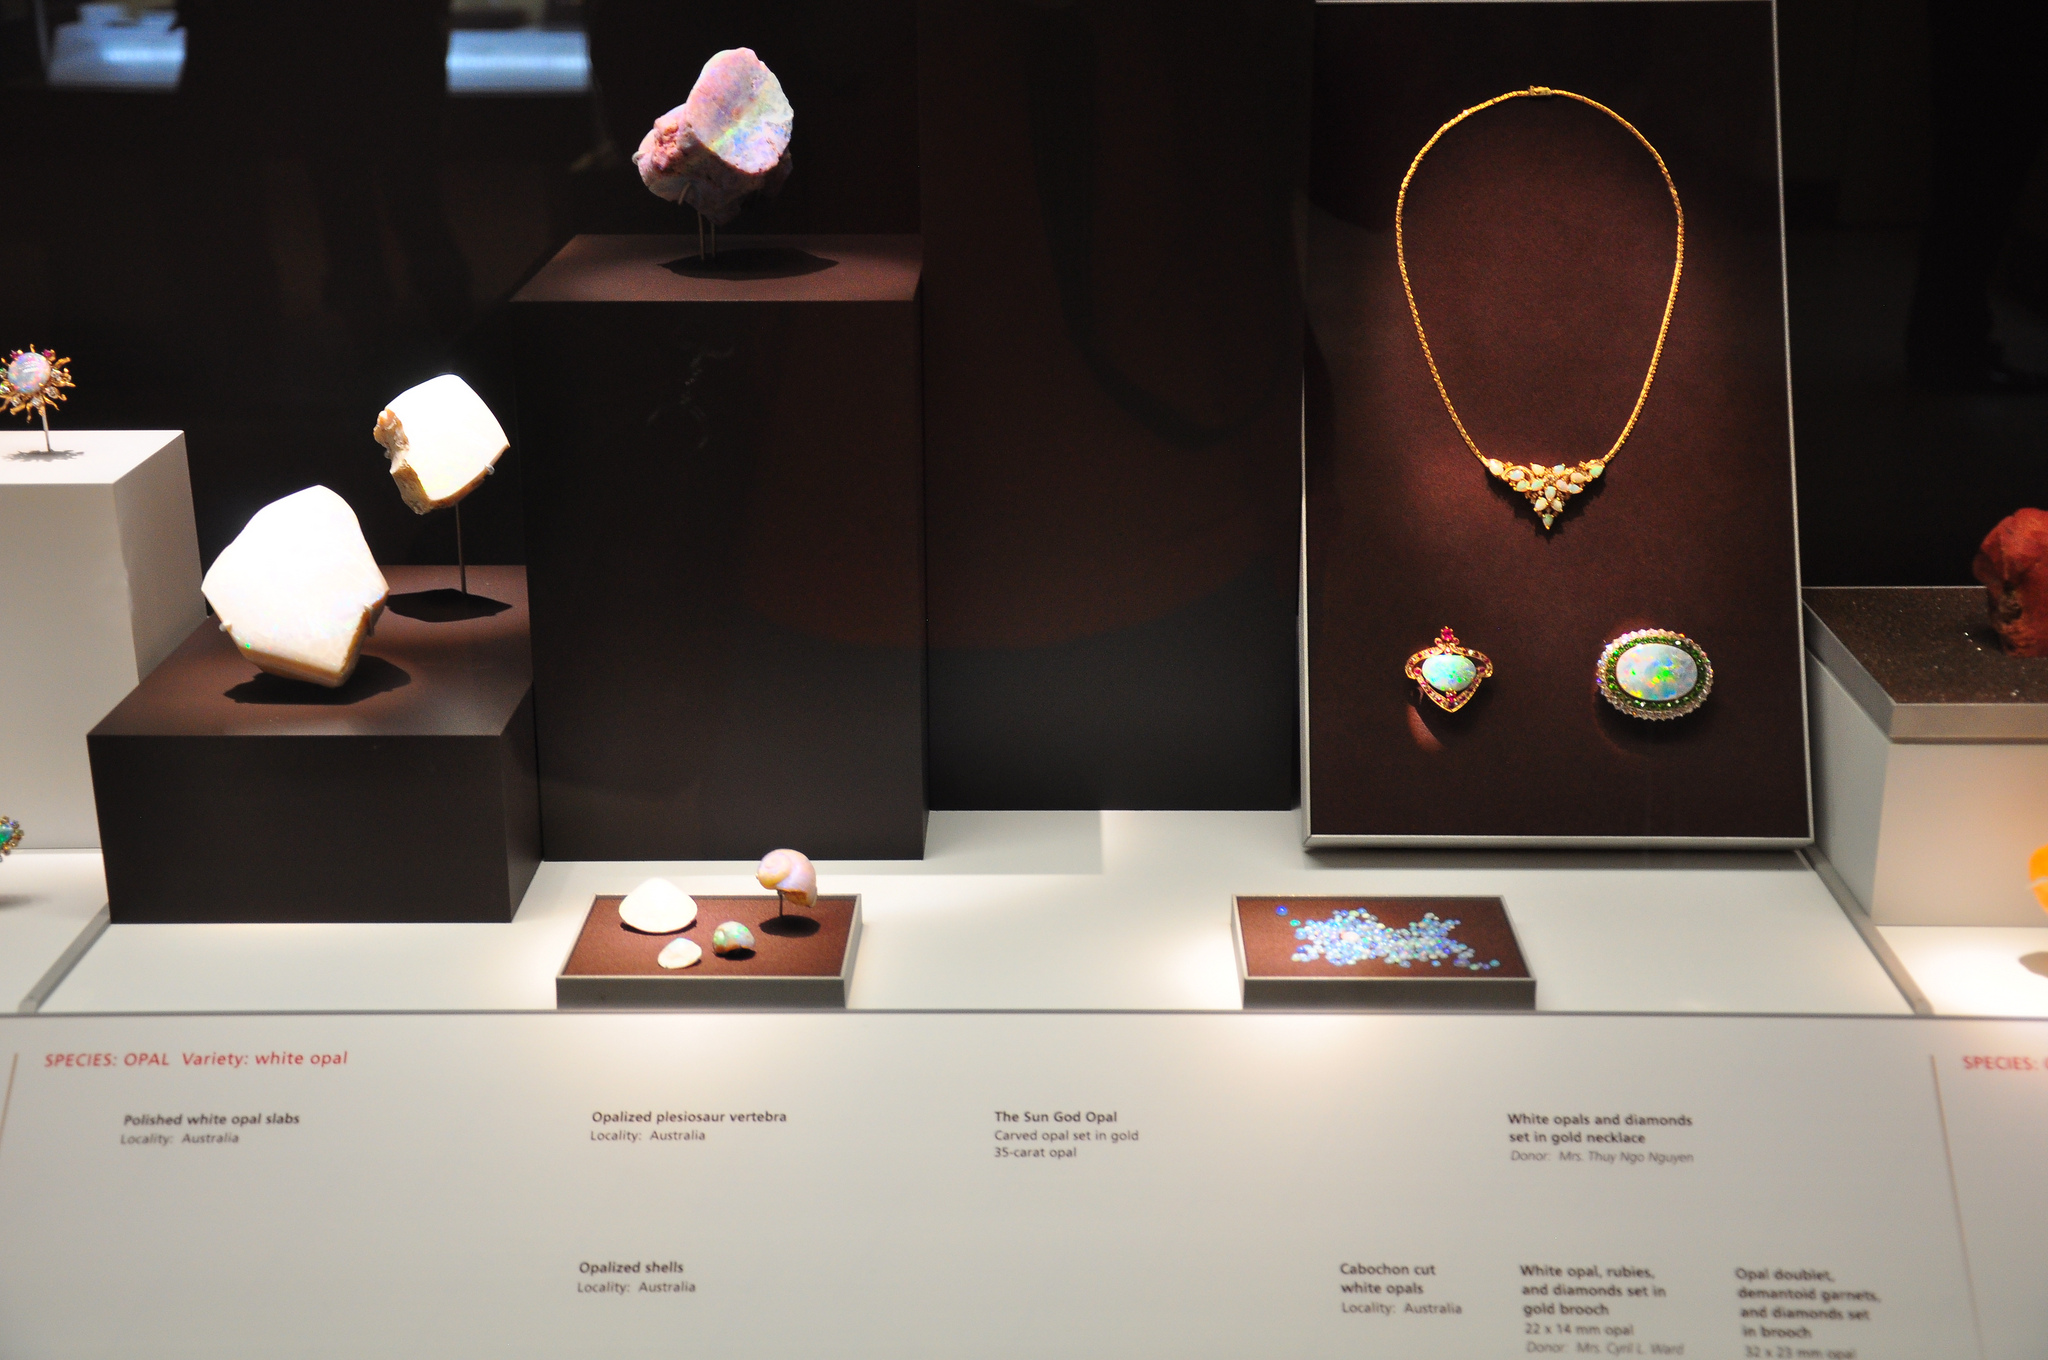 Photo of the Grainger Hall of Gems after its 2009 remodel. Dark display boxes against a white background highlight the evolution from raw gemstones (just out of view in a box of sand), to loose faceted gems, to beautiful jewels. Photo ©2012 Kimberly Vardeman.